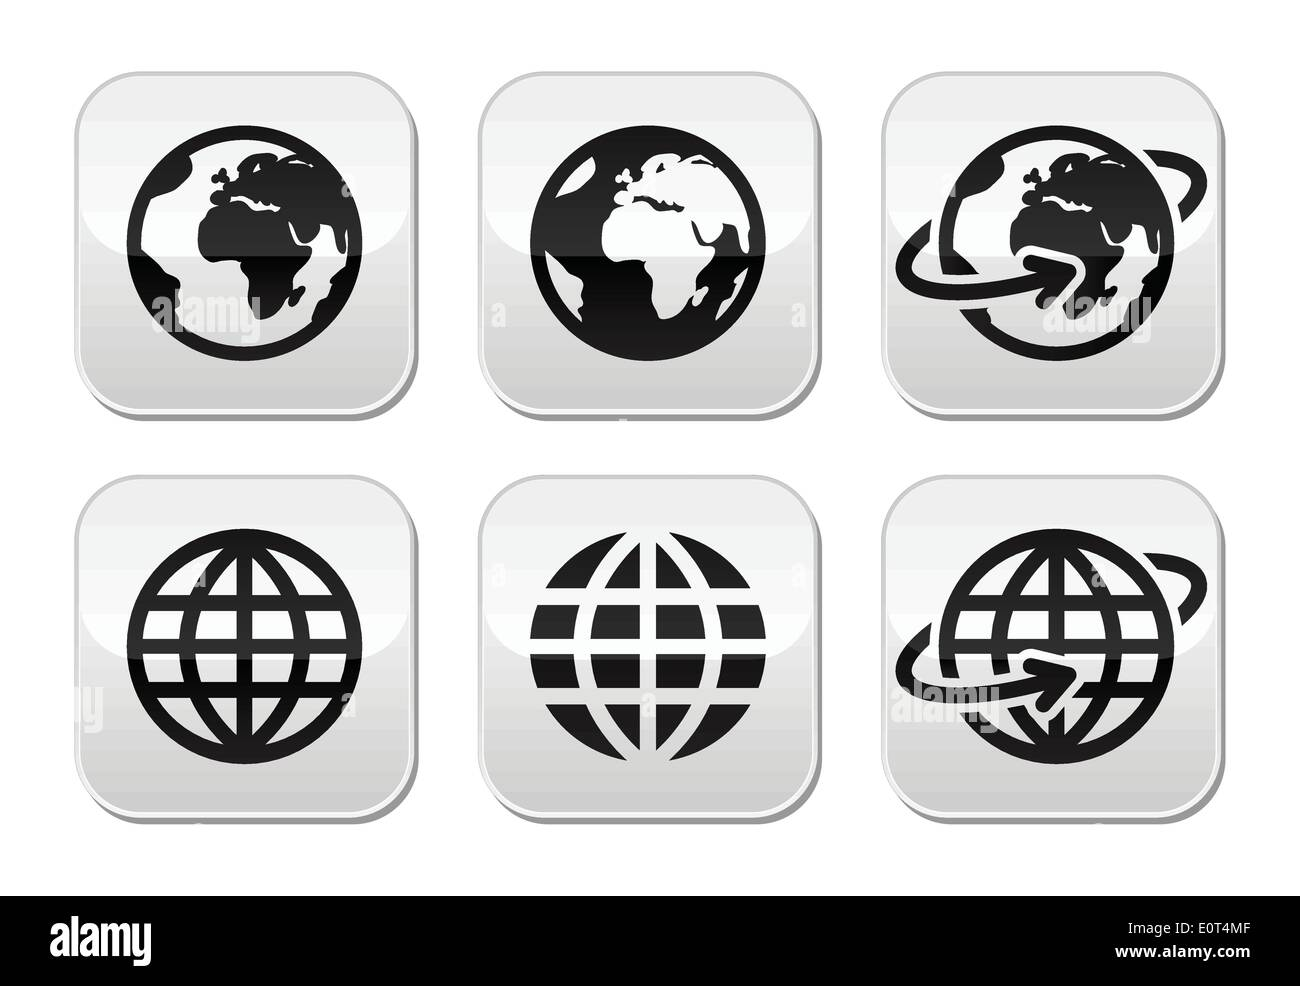 Globe earth with hands vector icons set with reflection - Stock Image